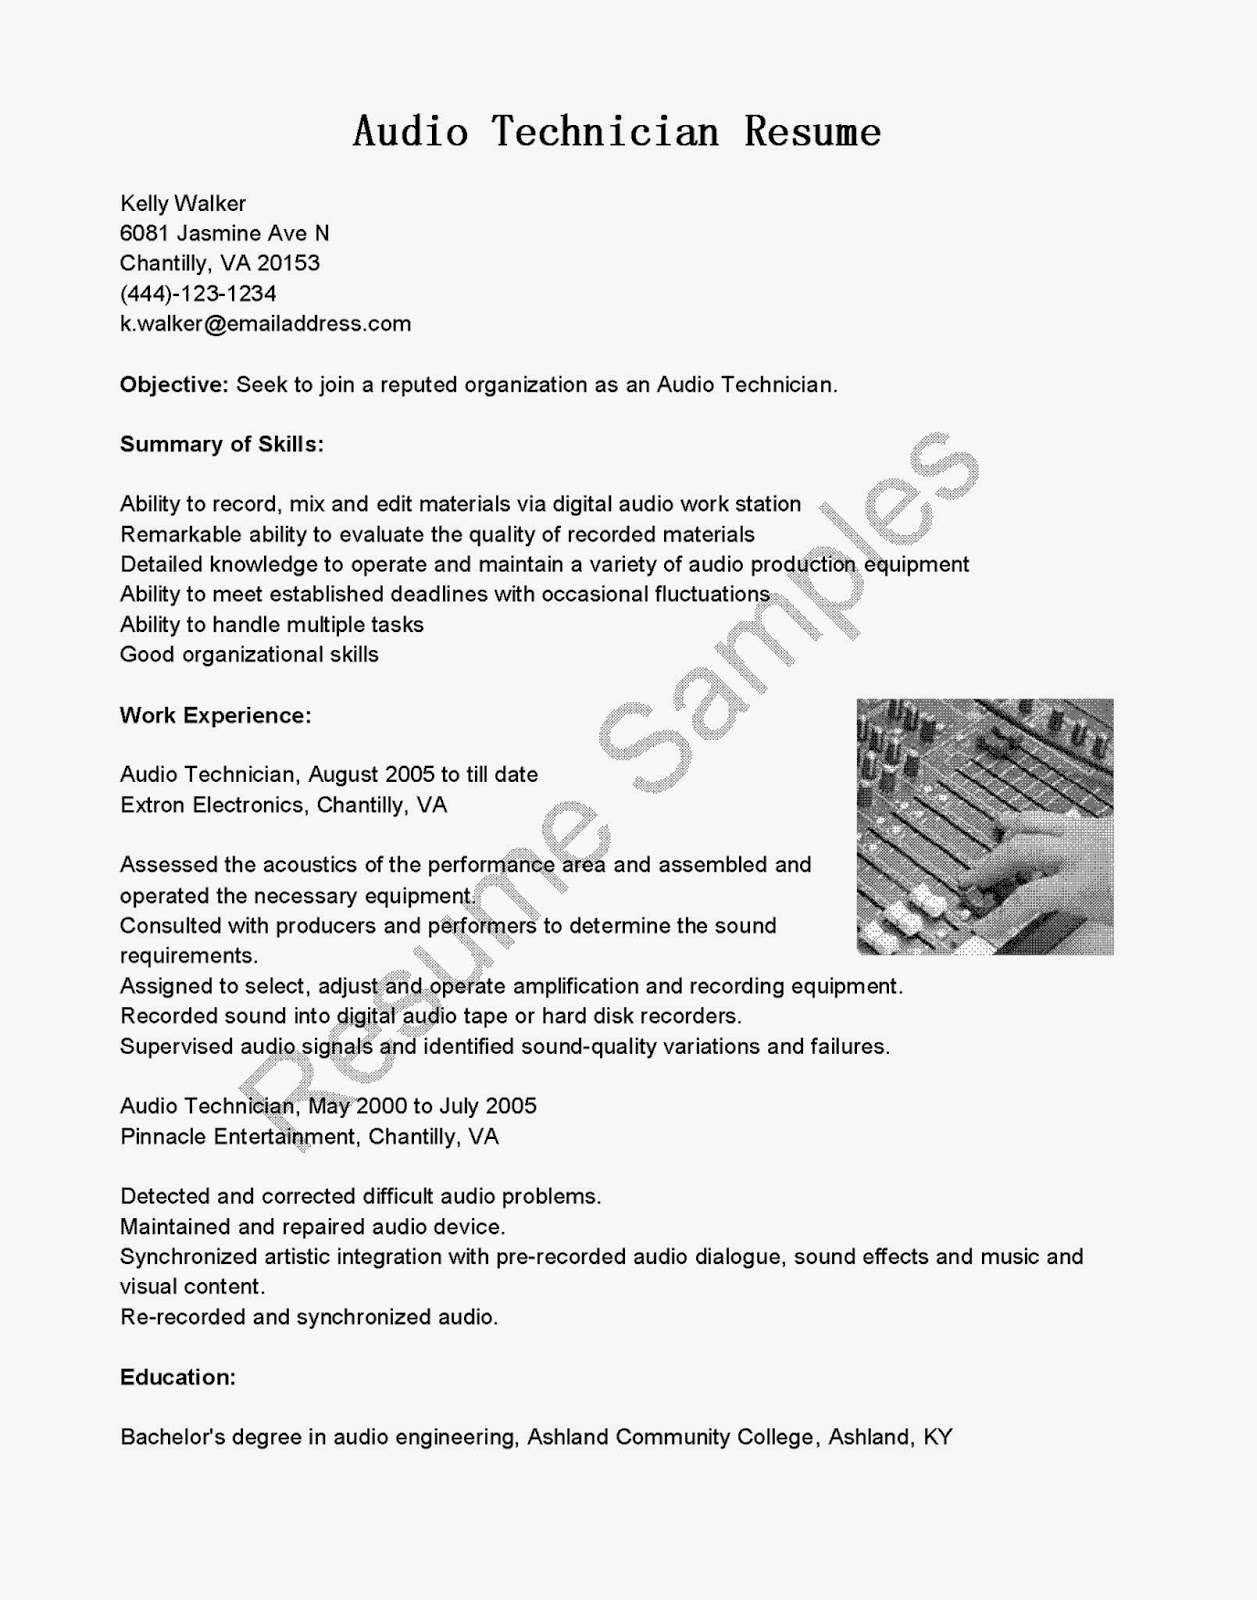 Hotel Security Guard Cover Letter | Civilian Security Officer Cover ...